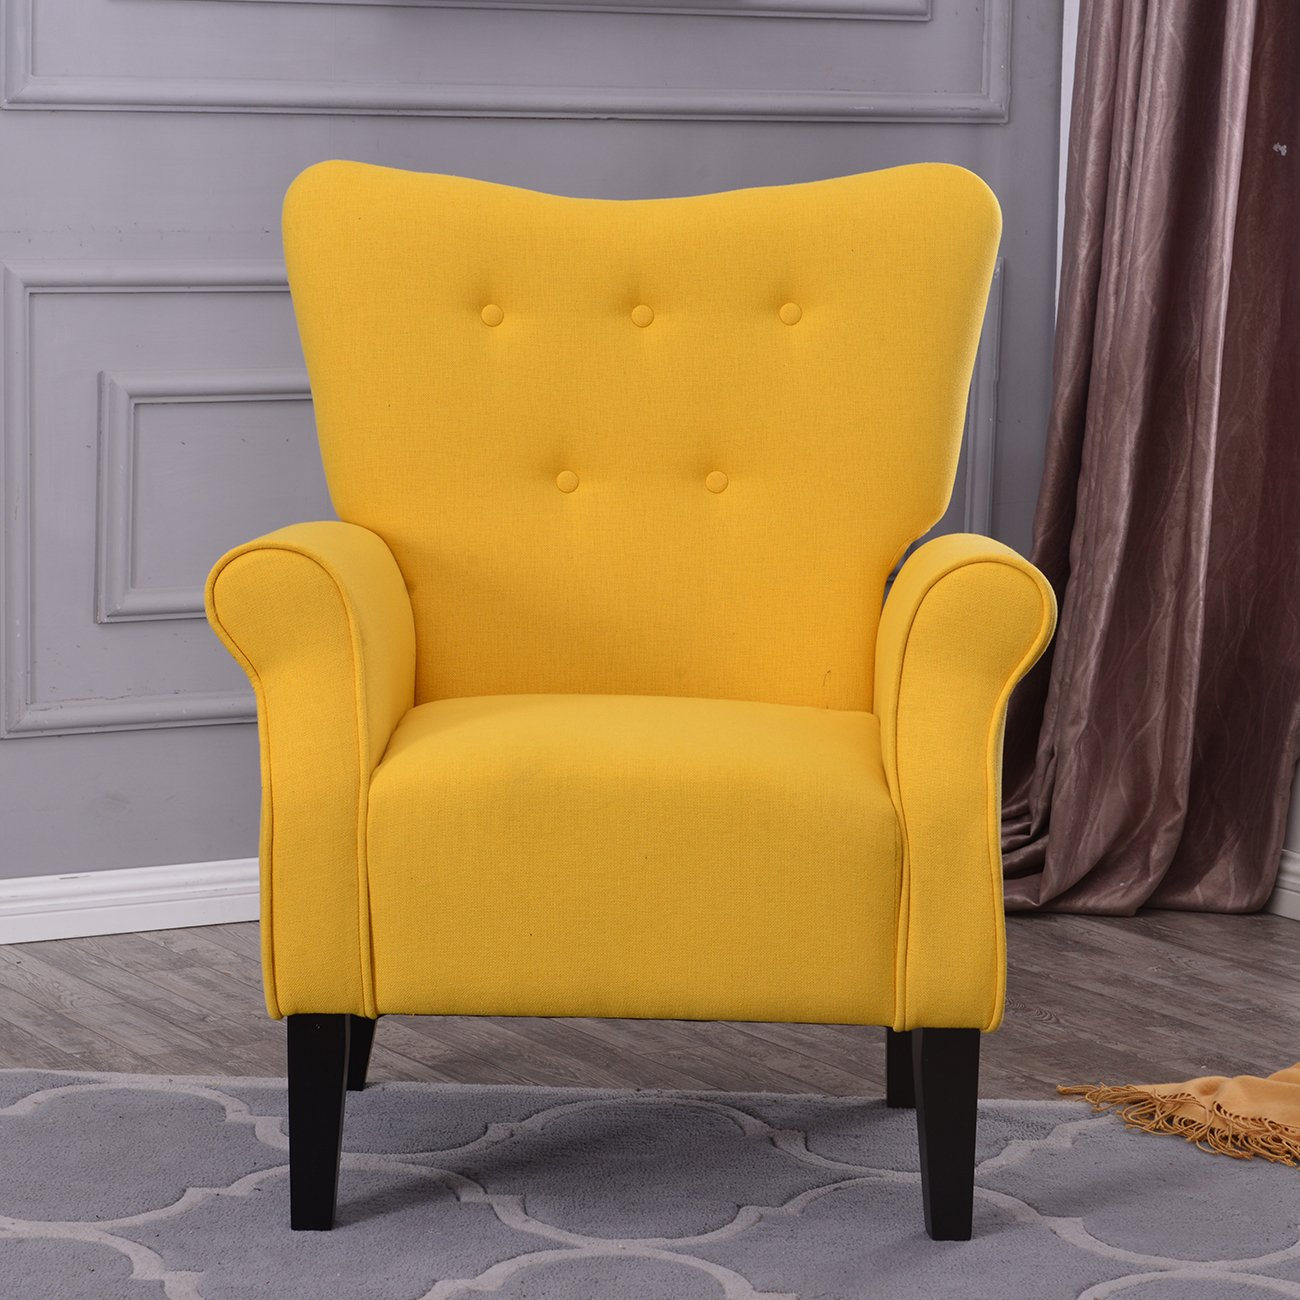 Belleze Modern Accent Chair Roll Arm Linen Living Room Bedroom Wood Leg (Citrine Yellow